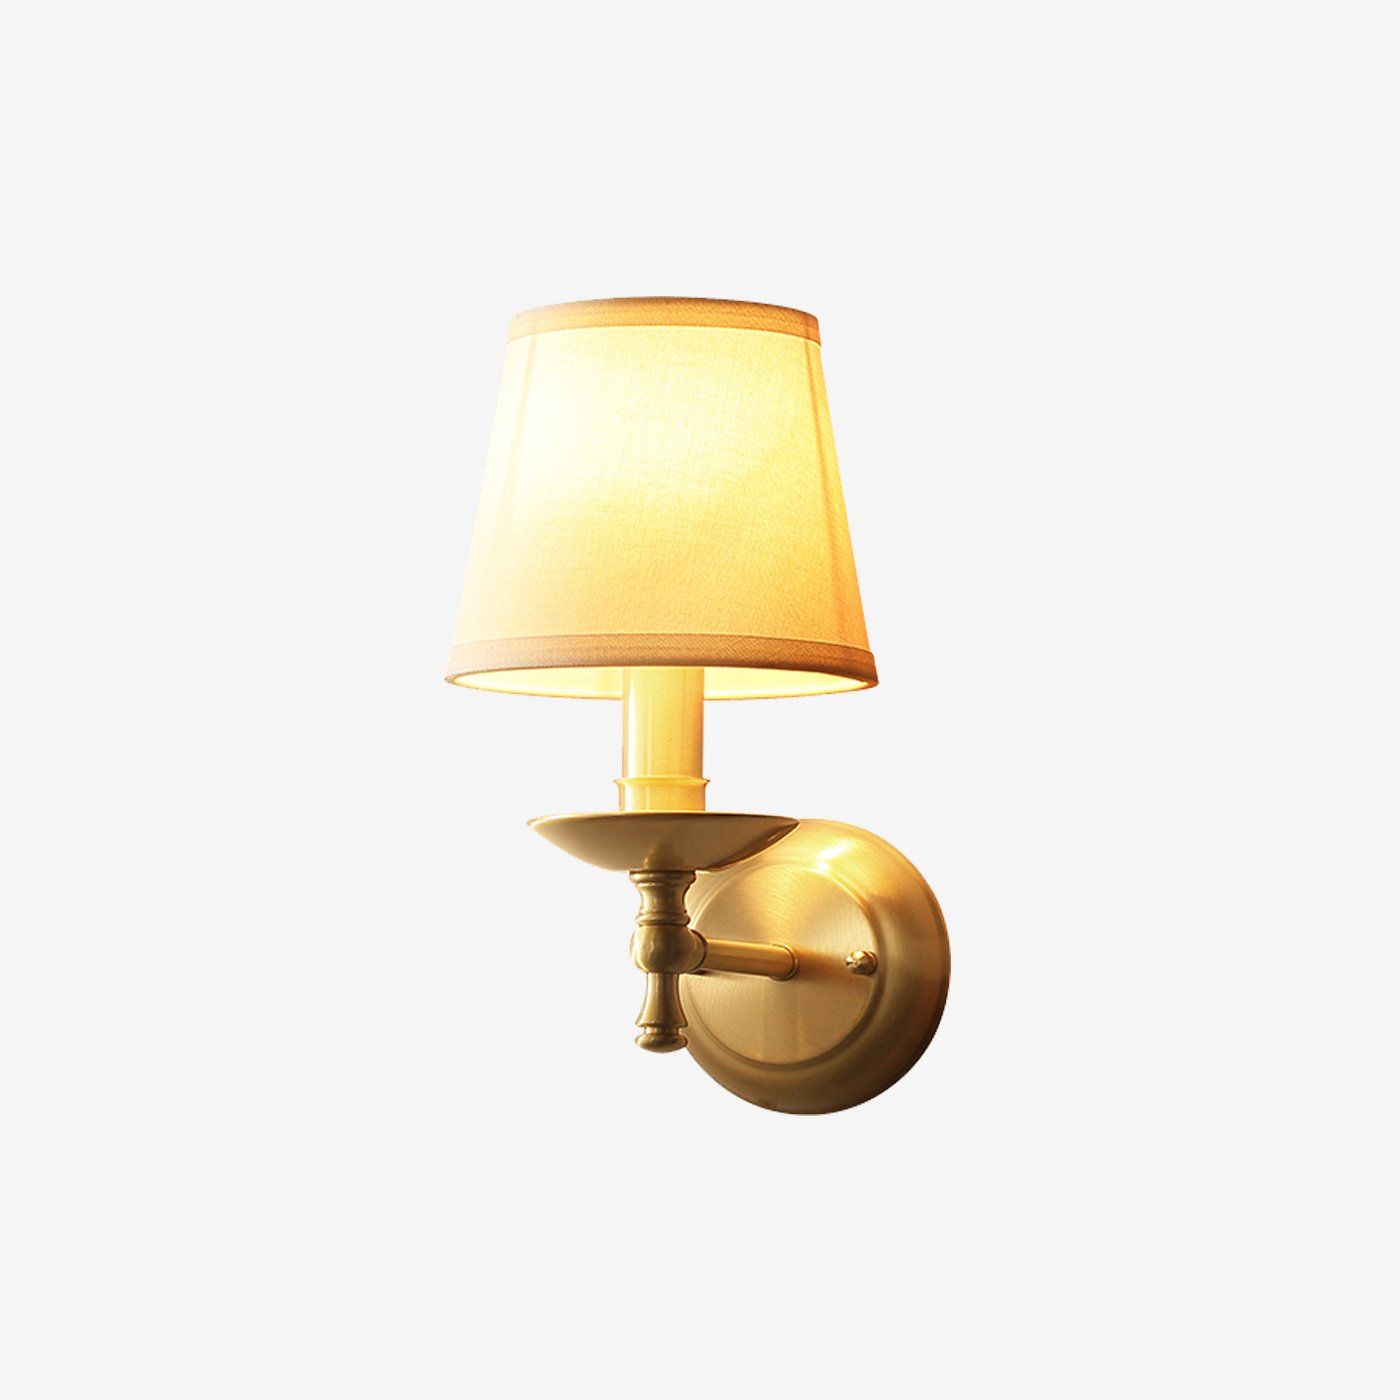 Wall Lamp Brass Finish With Shade